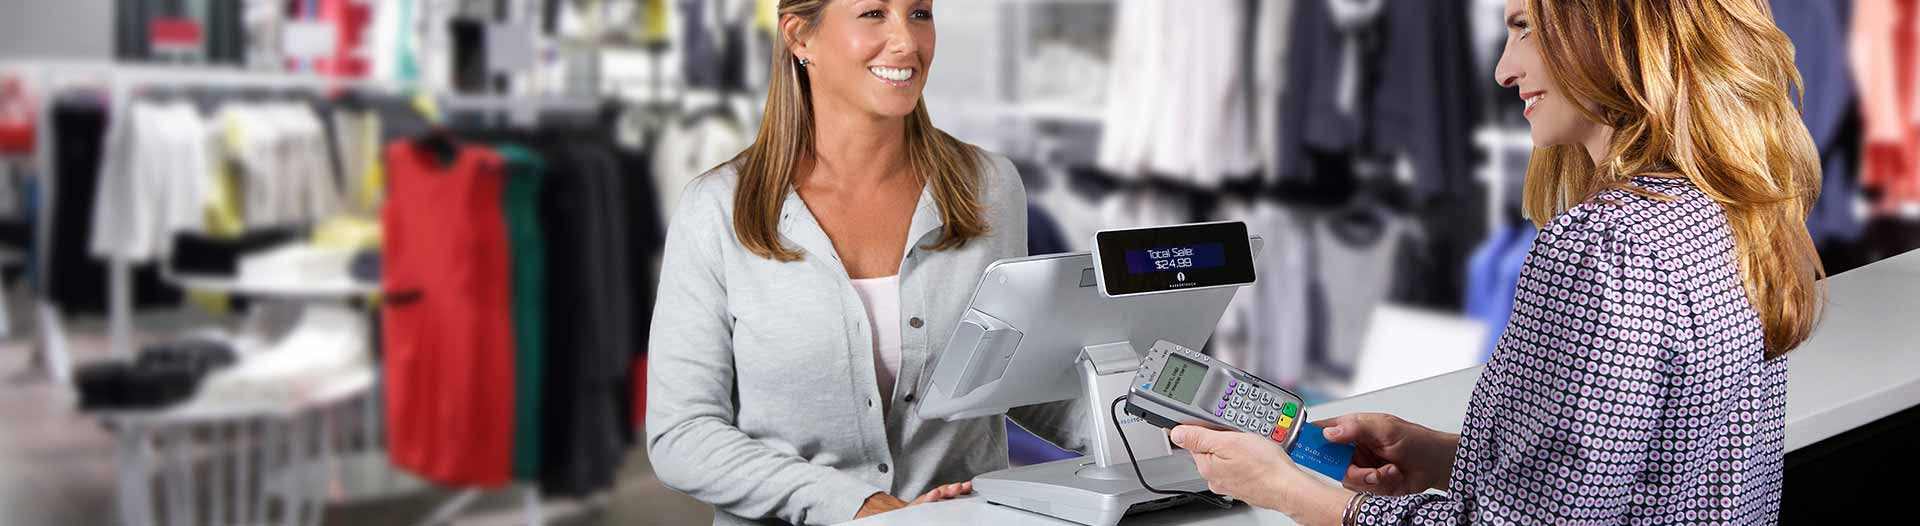 Dallas POS Systems - Customer and Cashier Transaction